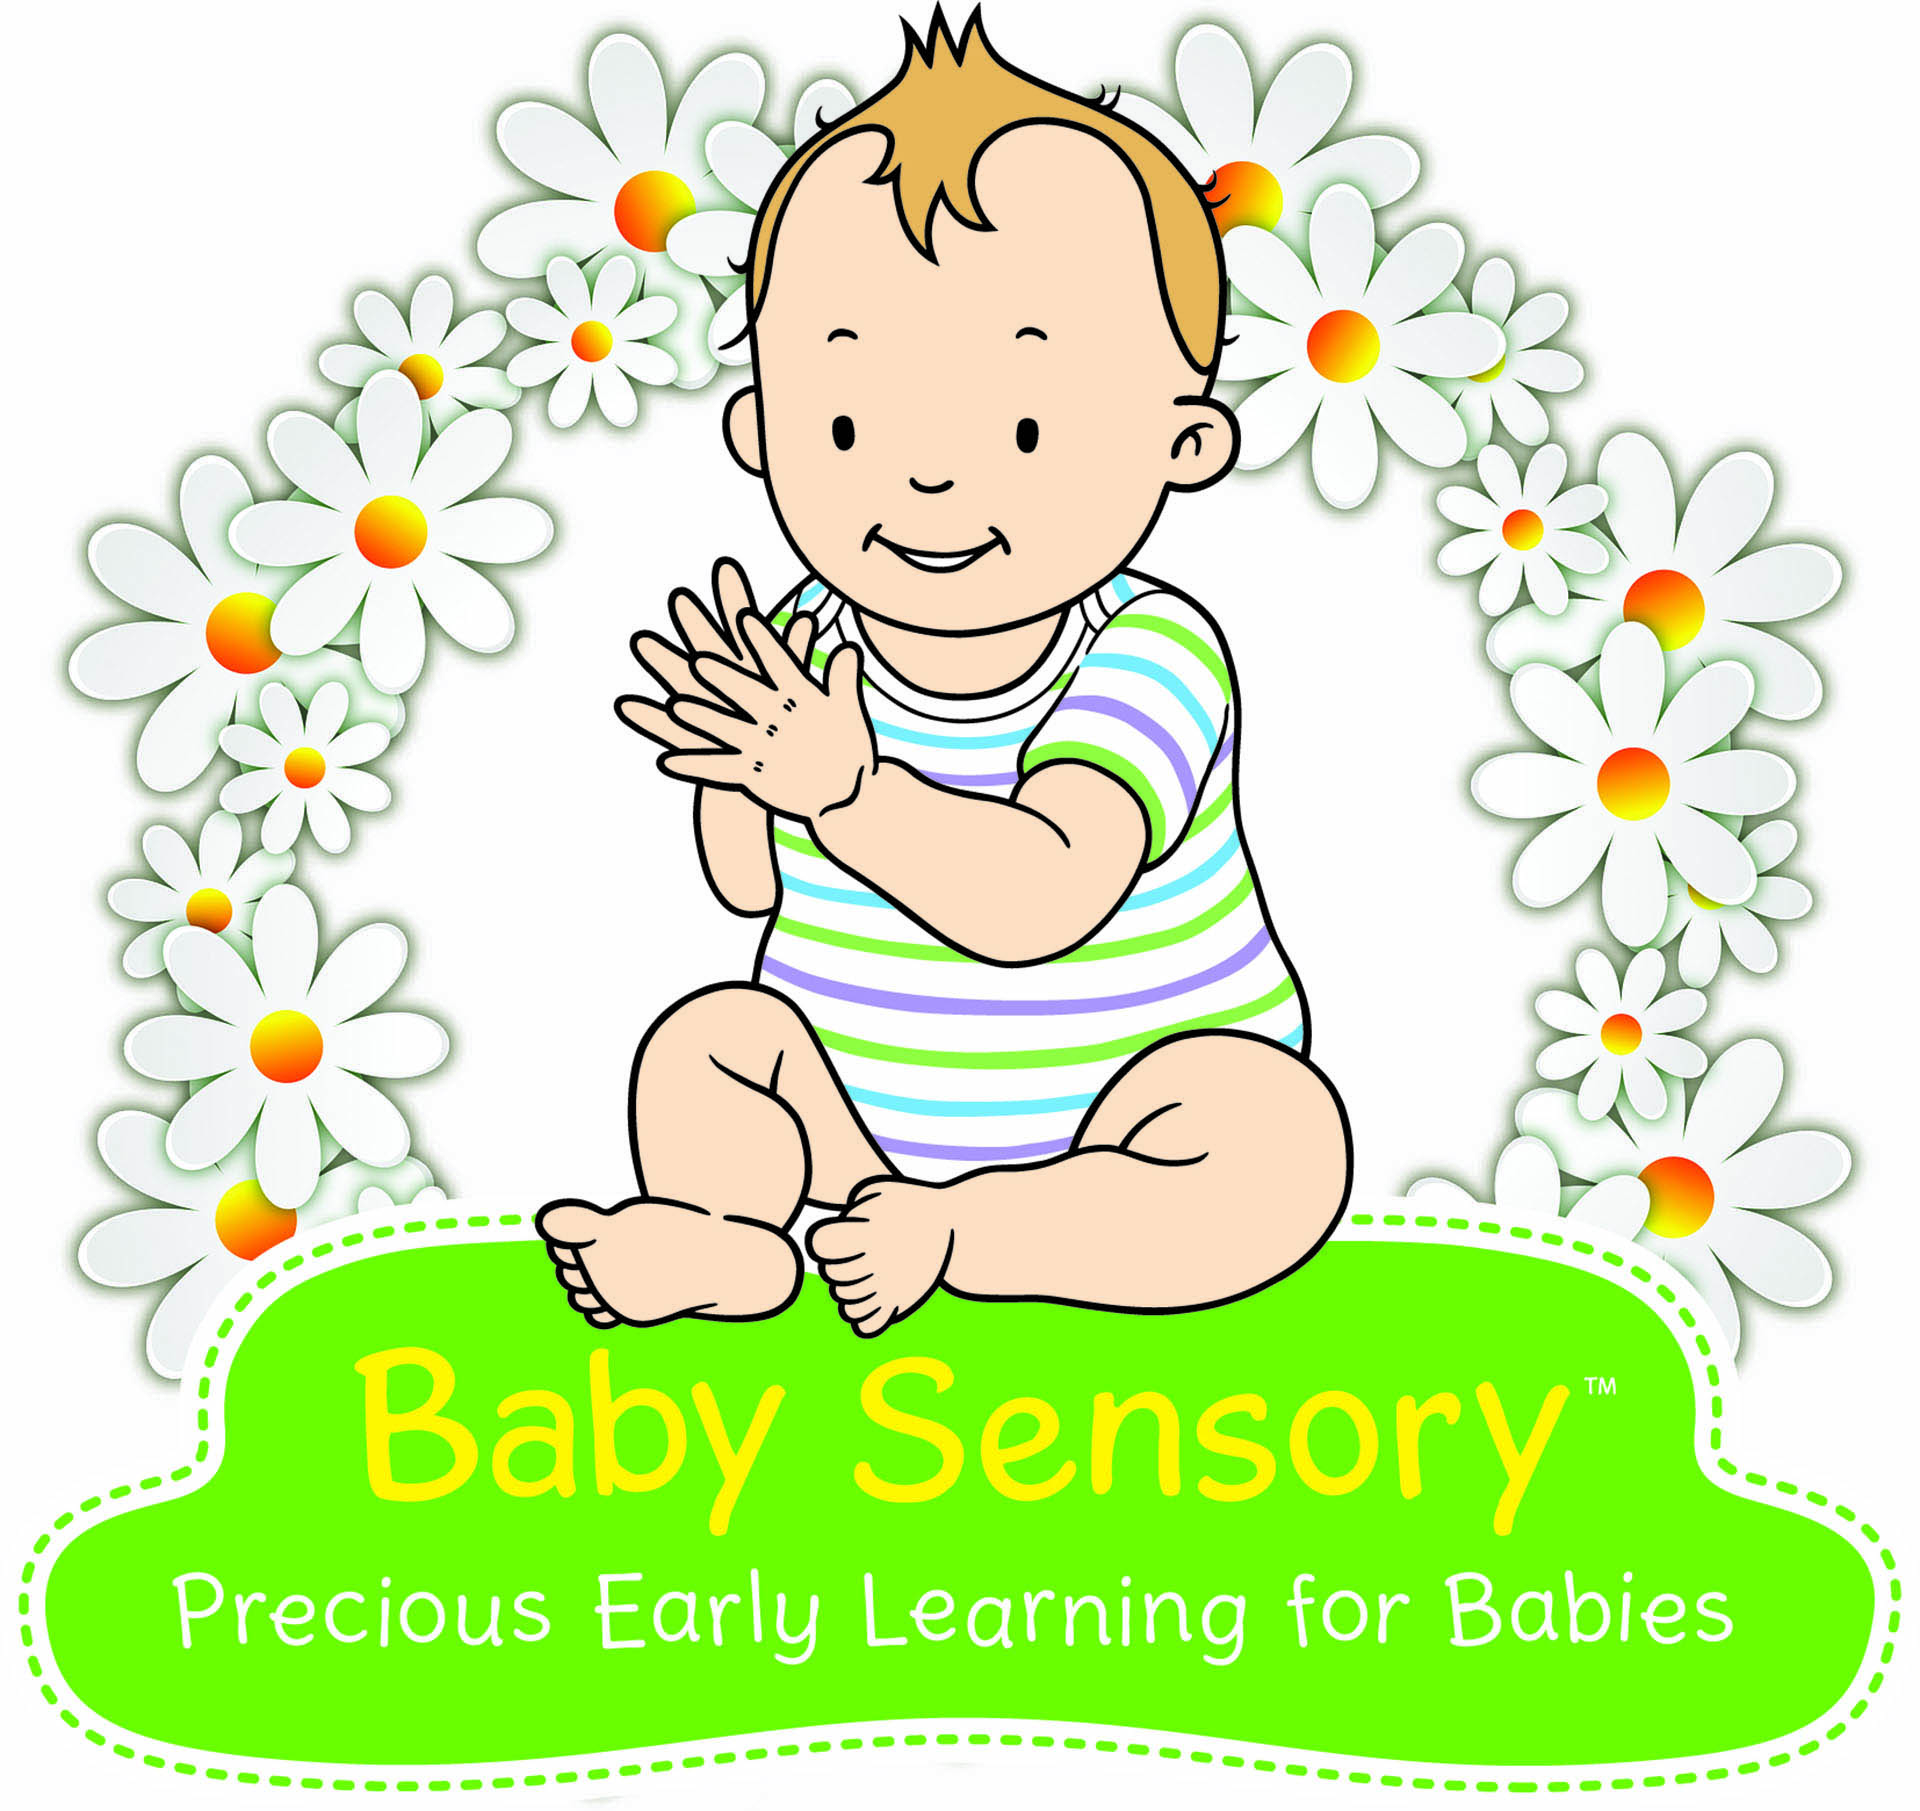 Baby Sensory Guildford's logo